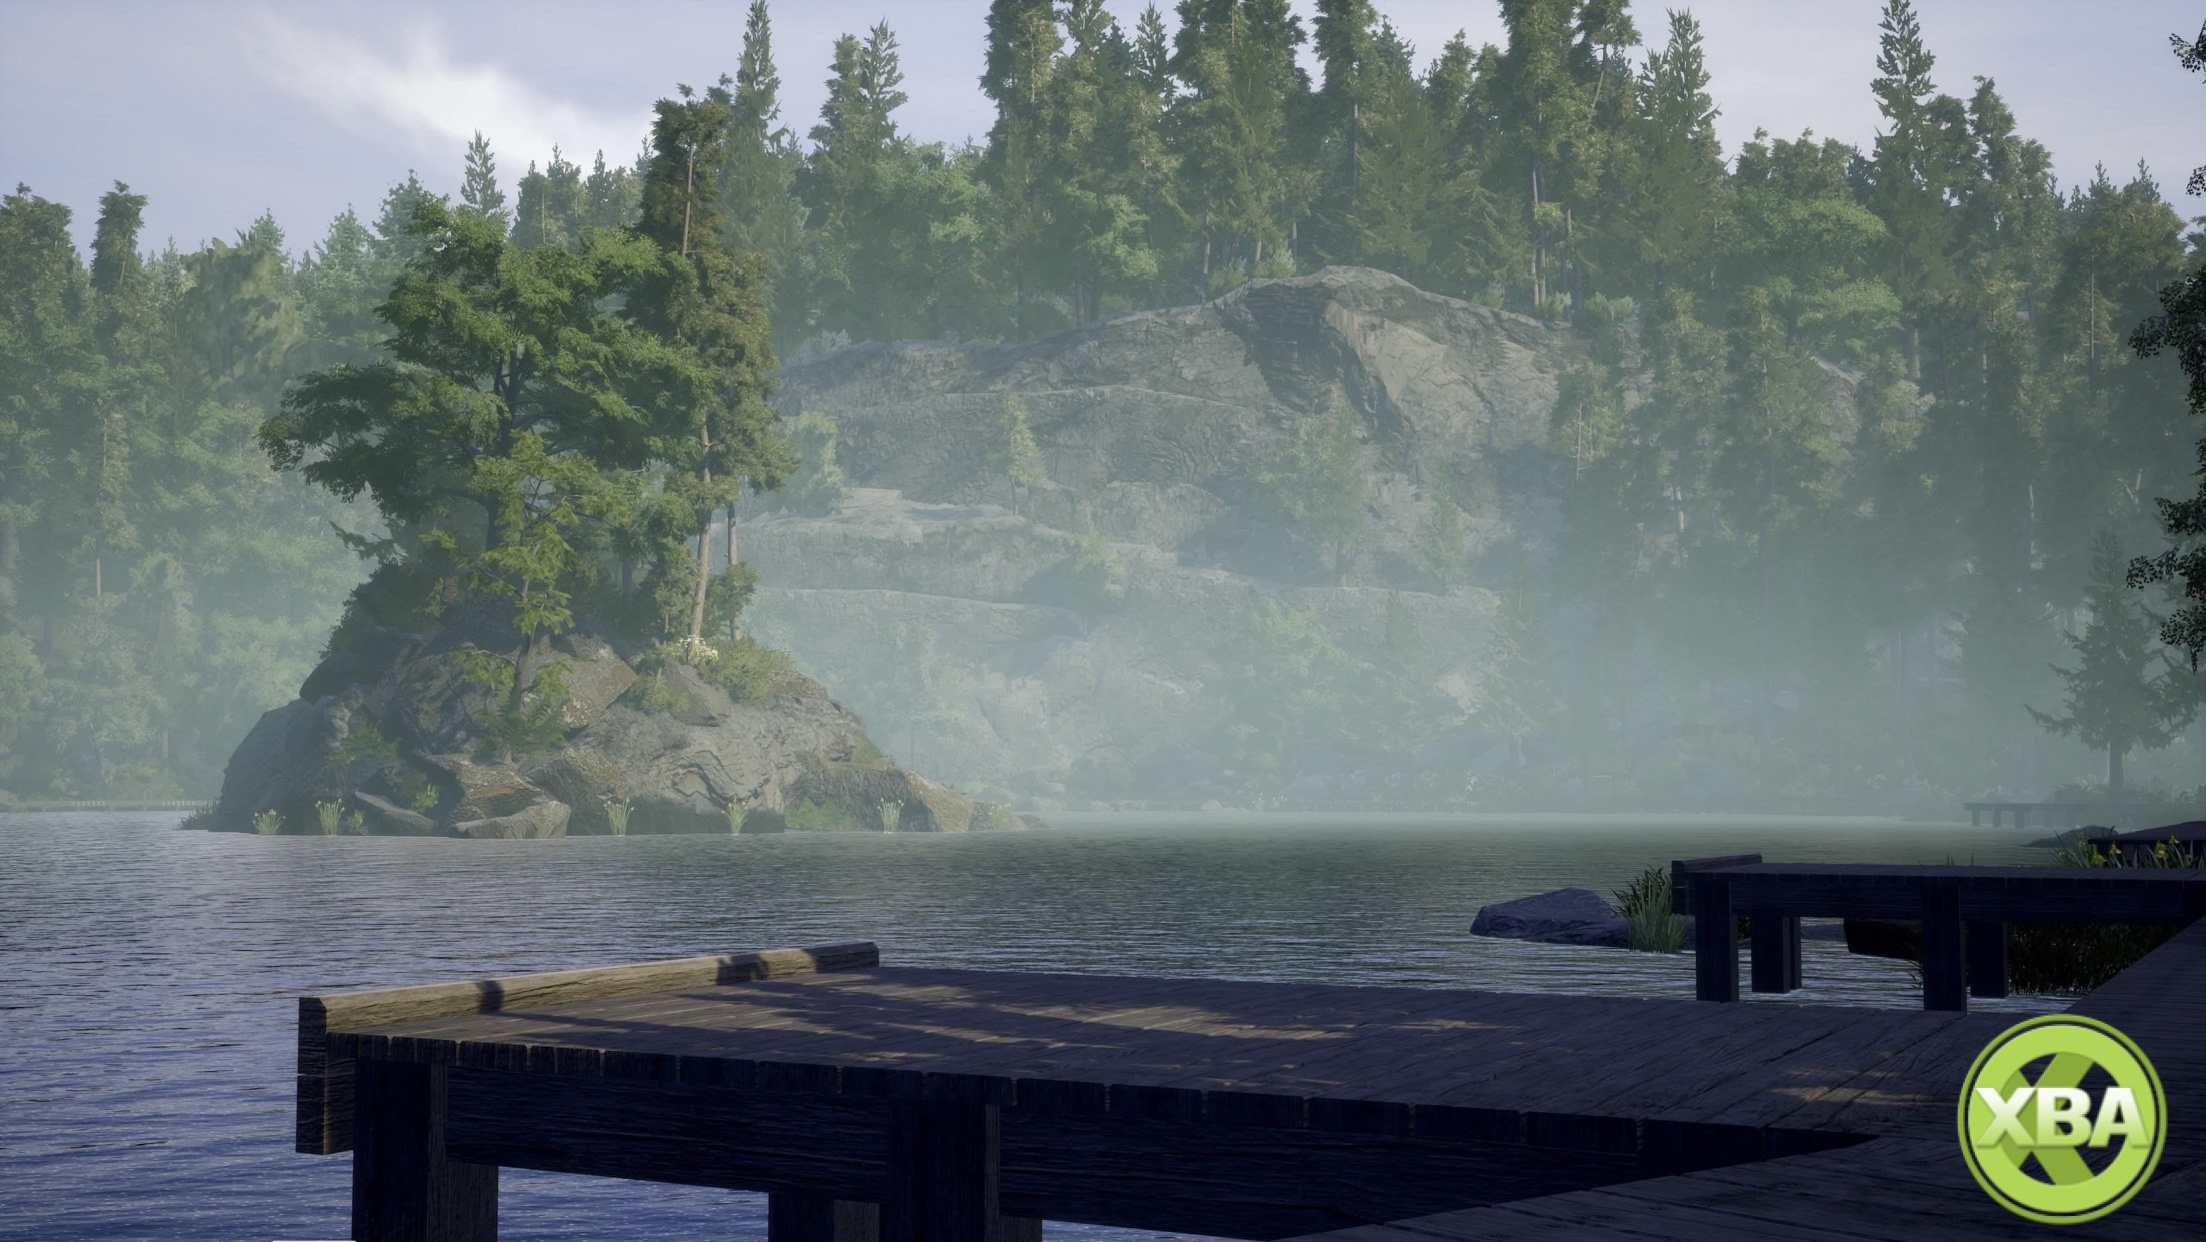 Euro fishing dlc pack 39 waldsee 39 adds mysterious hideaway for Fishing game xbox one